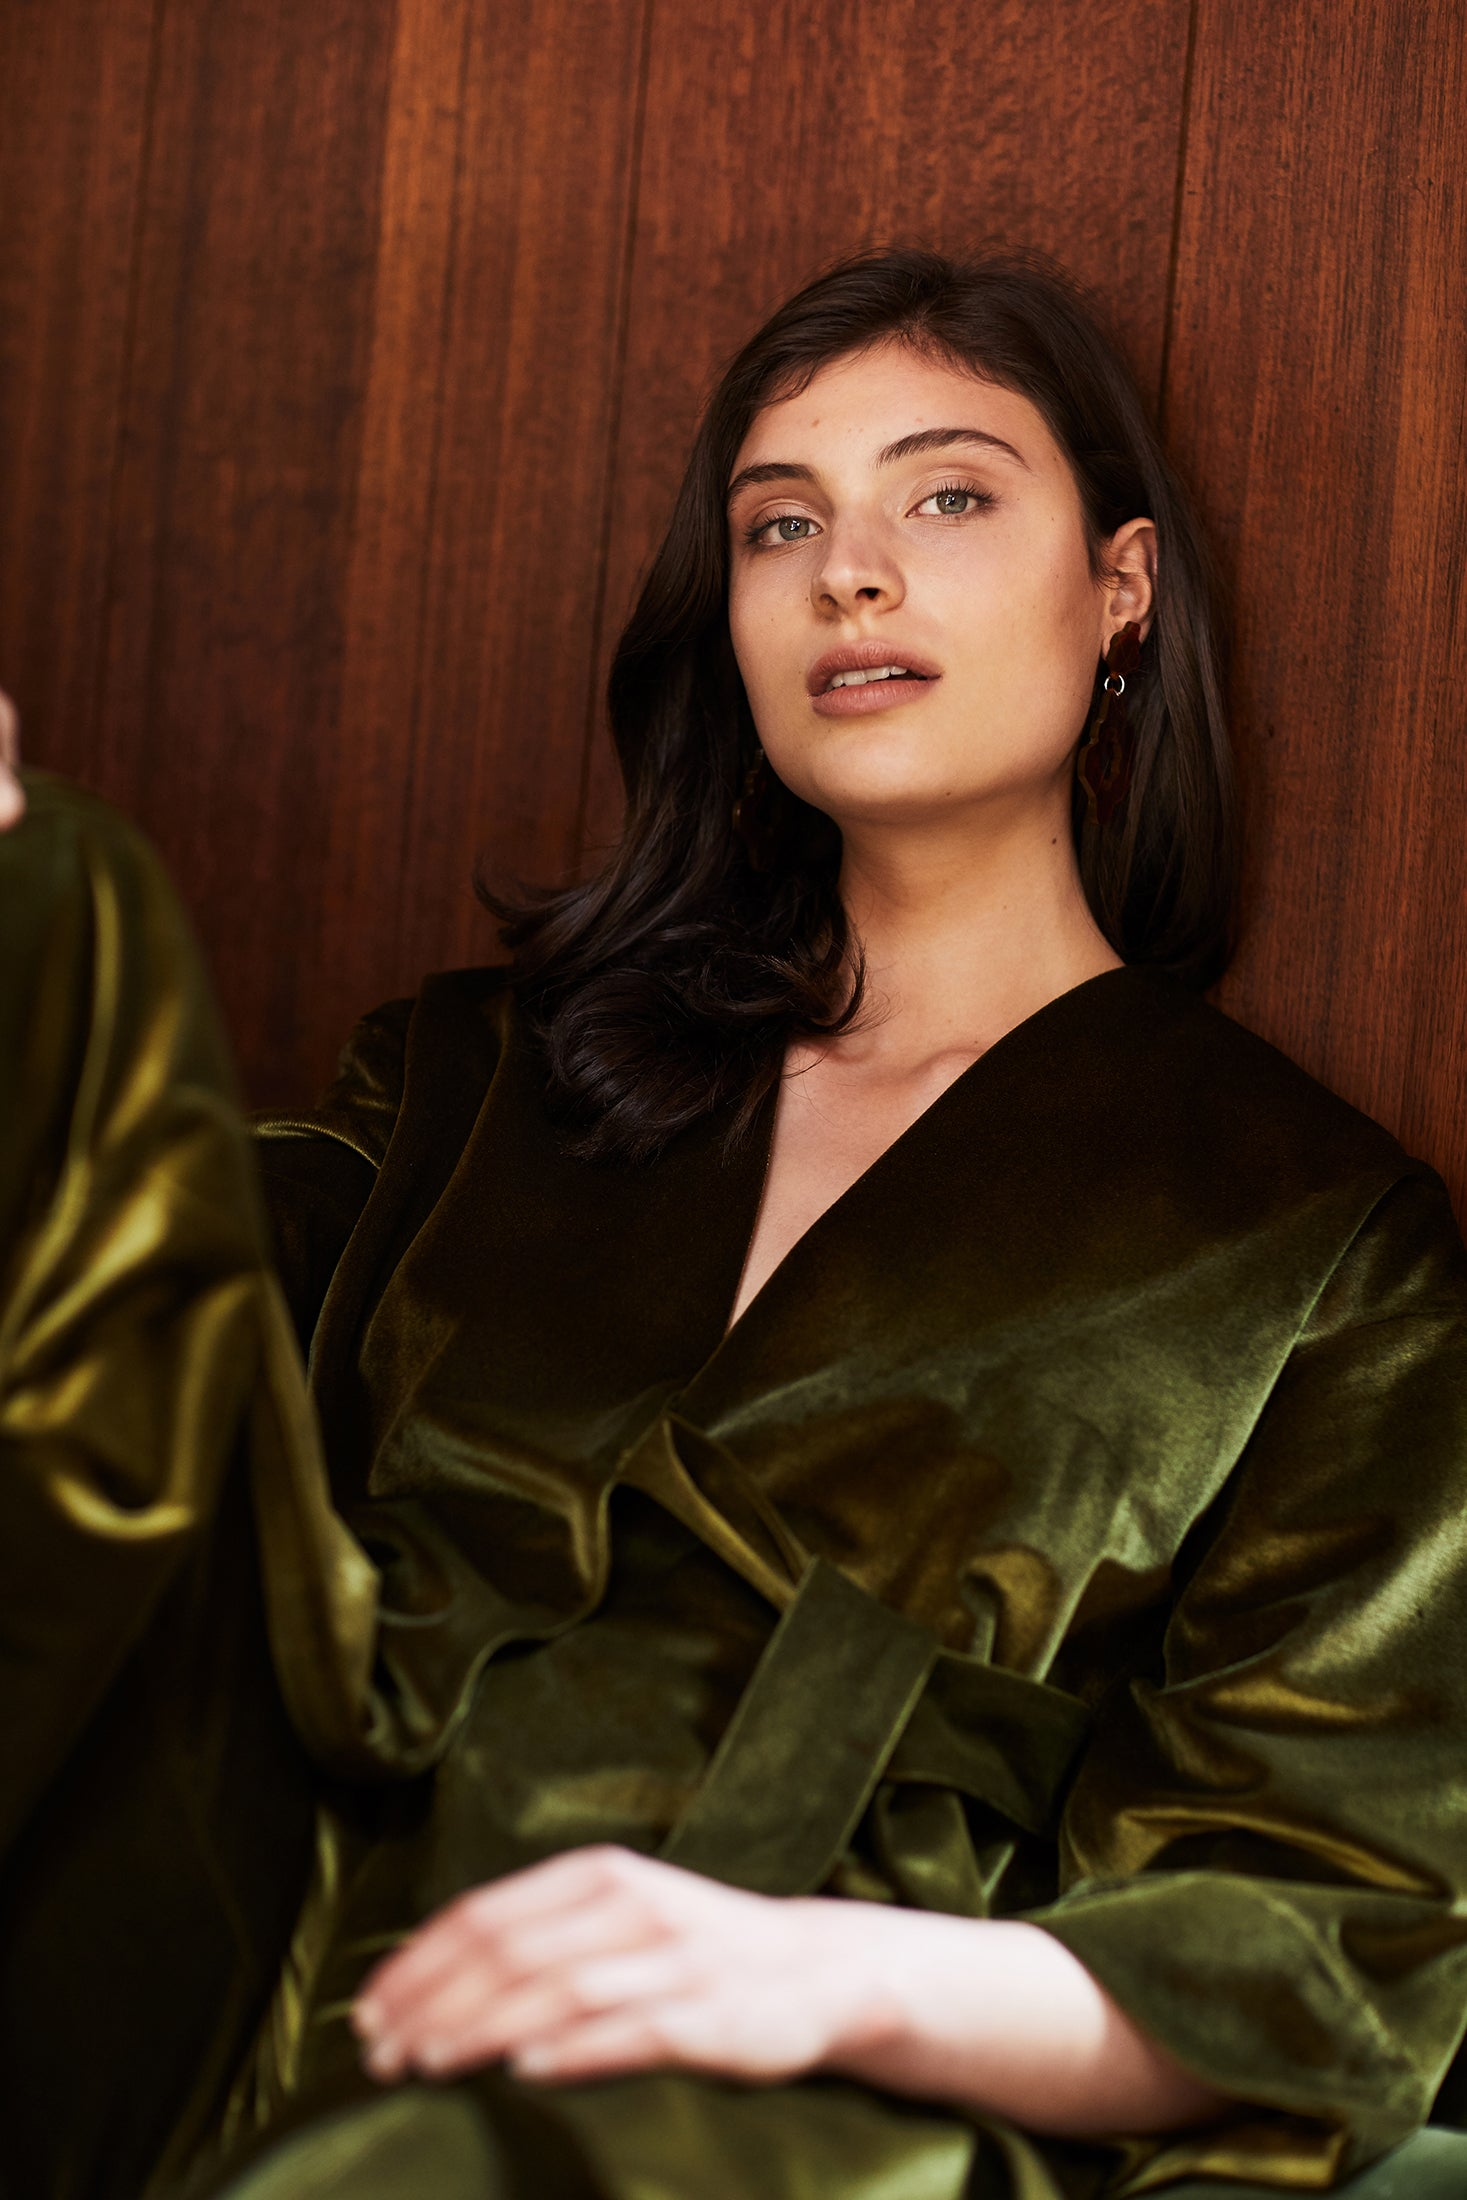 keegan AW19 Woodland Campaign Ethical Fashion Made in Melbourne Australia Green Velvet Coat Jacket